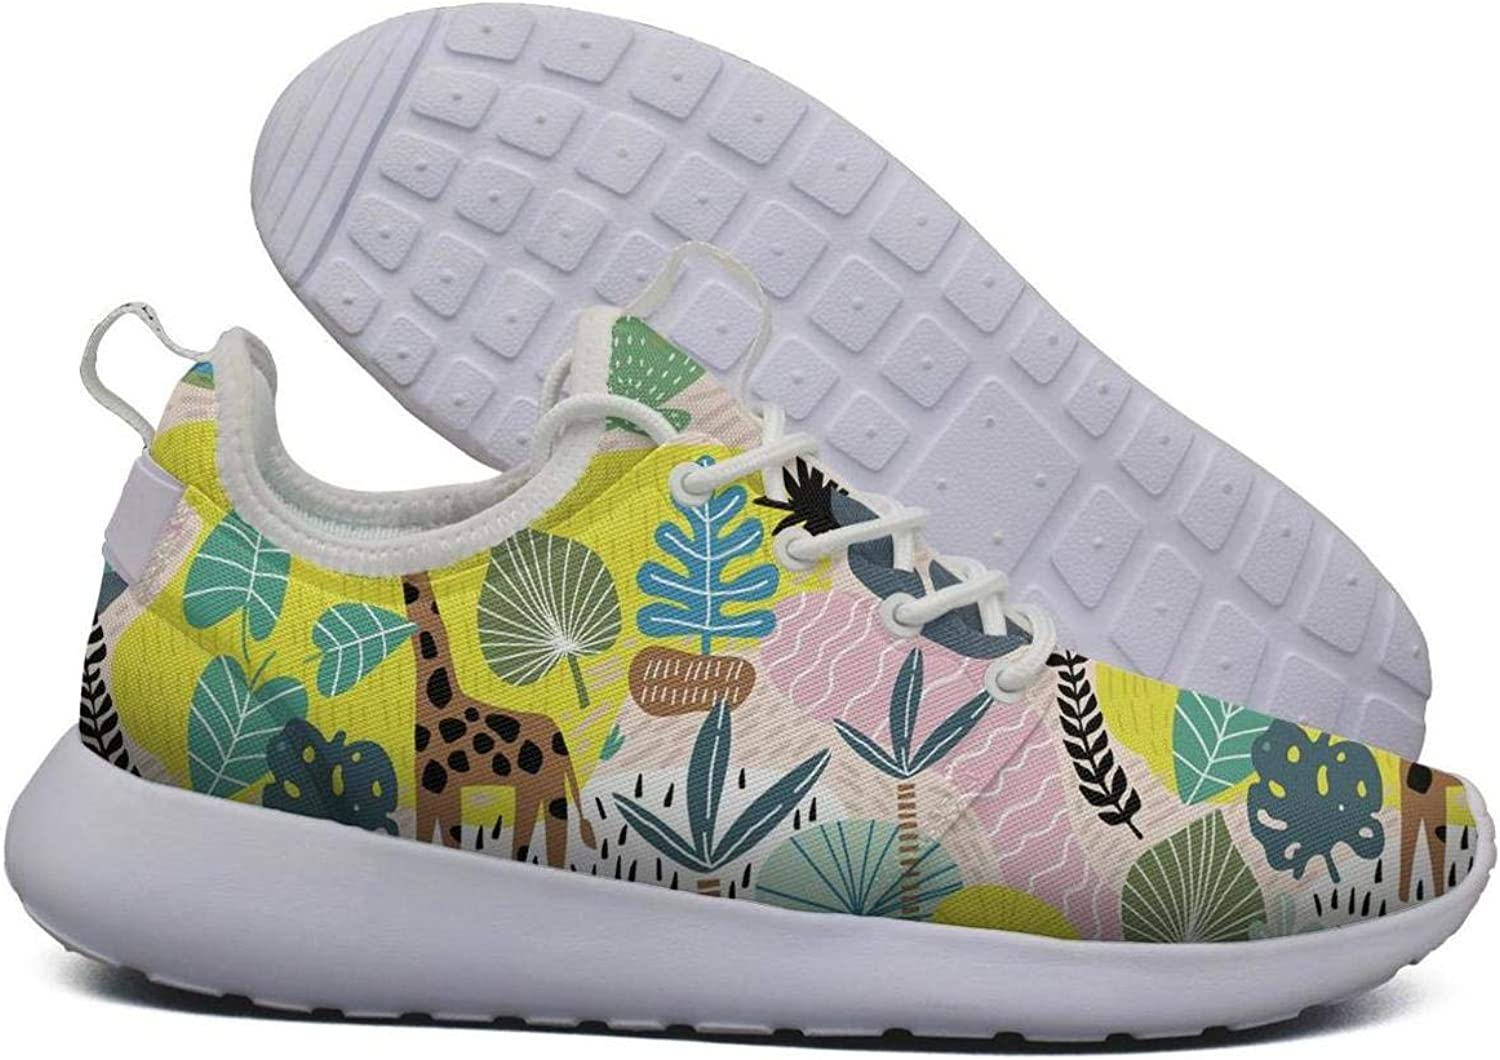 Hoohle Sports Womens colorful Giraffe Zebra Toucan Flex Mesh Roshe 2 Lightweight Casual Road Running shoes